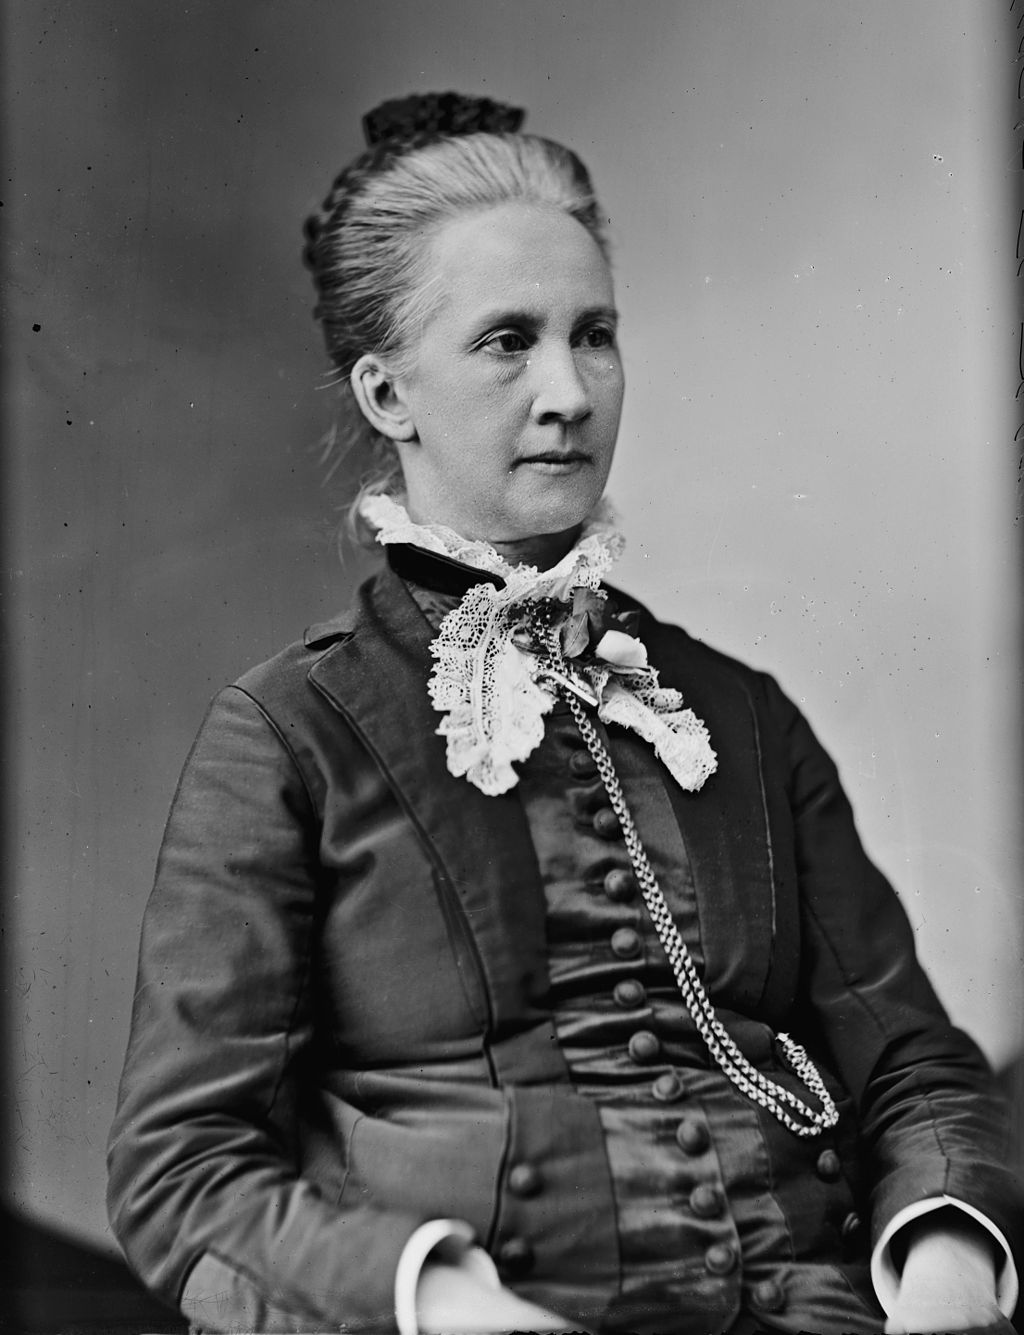 Belva Lockwood. This work is from the Brady-Handy collection at the Library of Congress. Public Domain